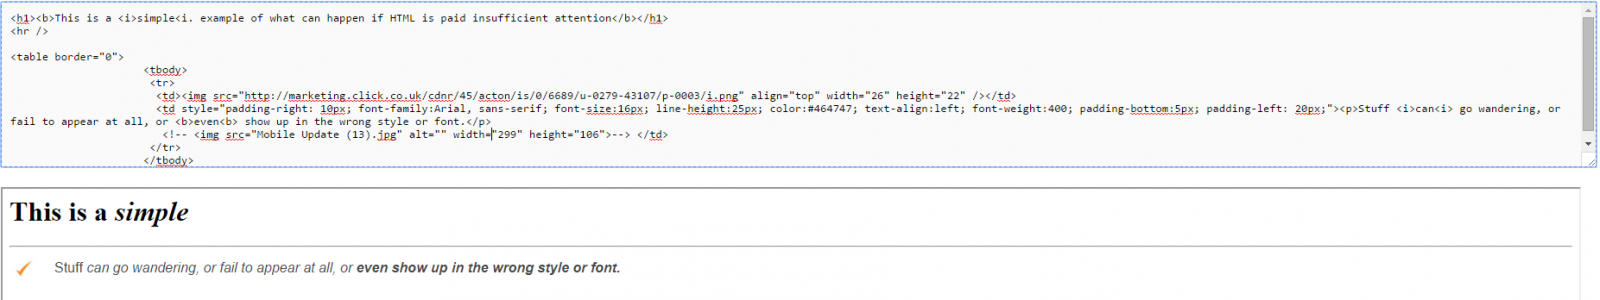 Simple HTML snippet